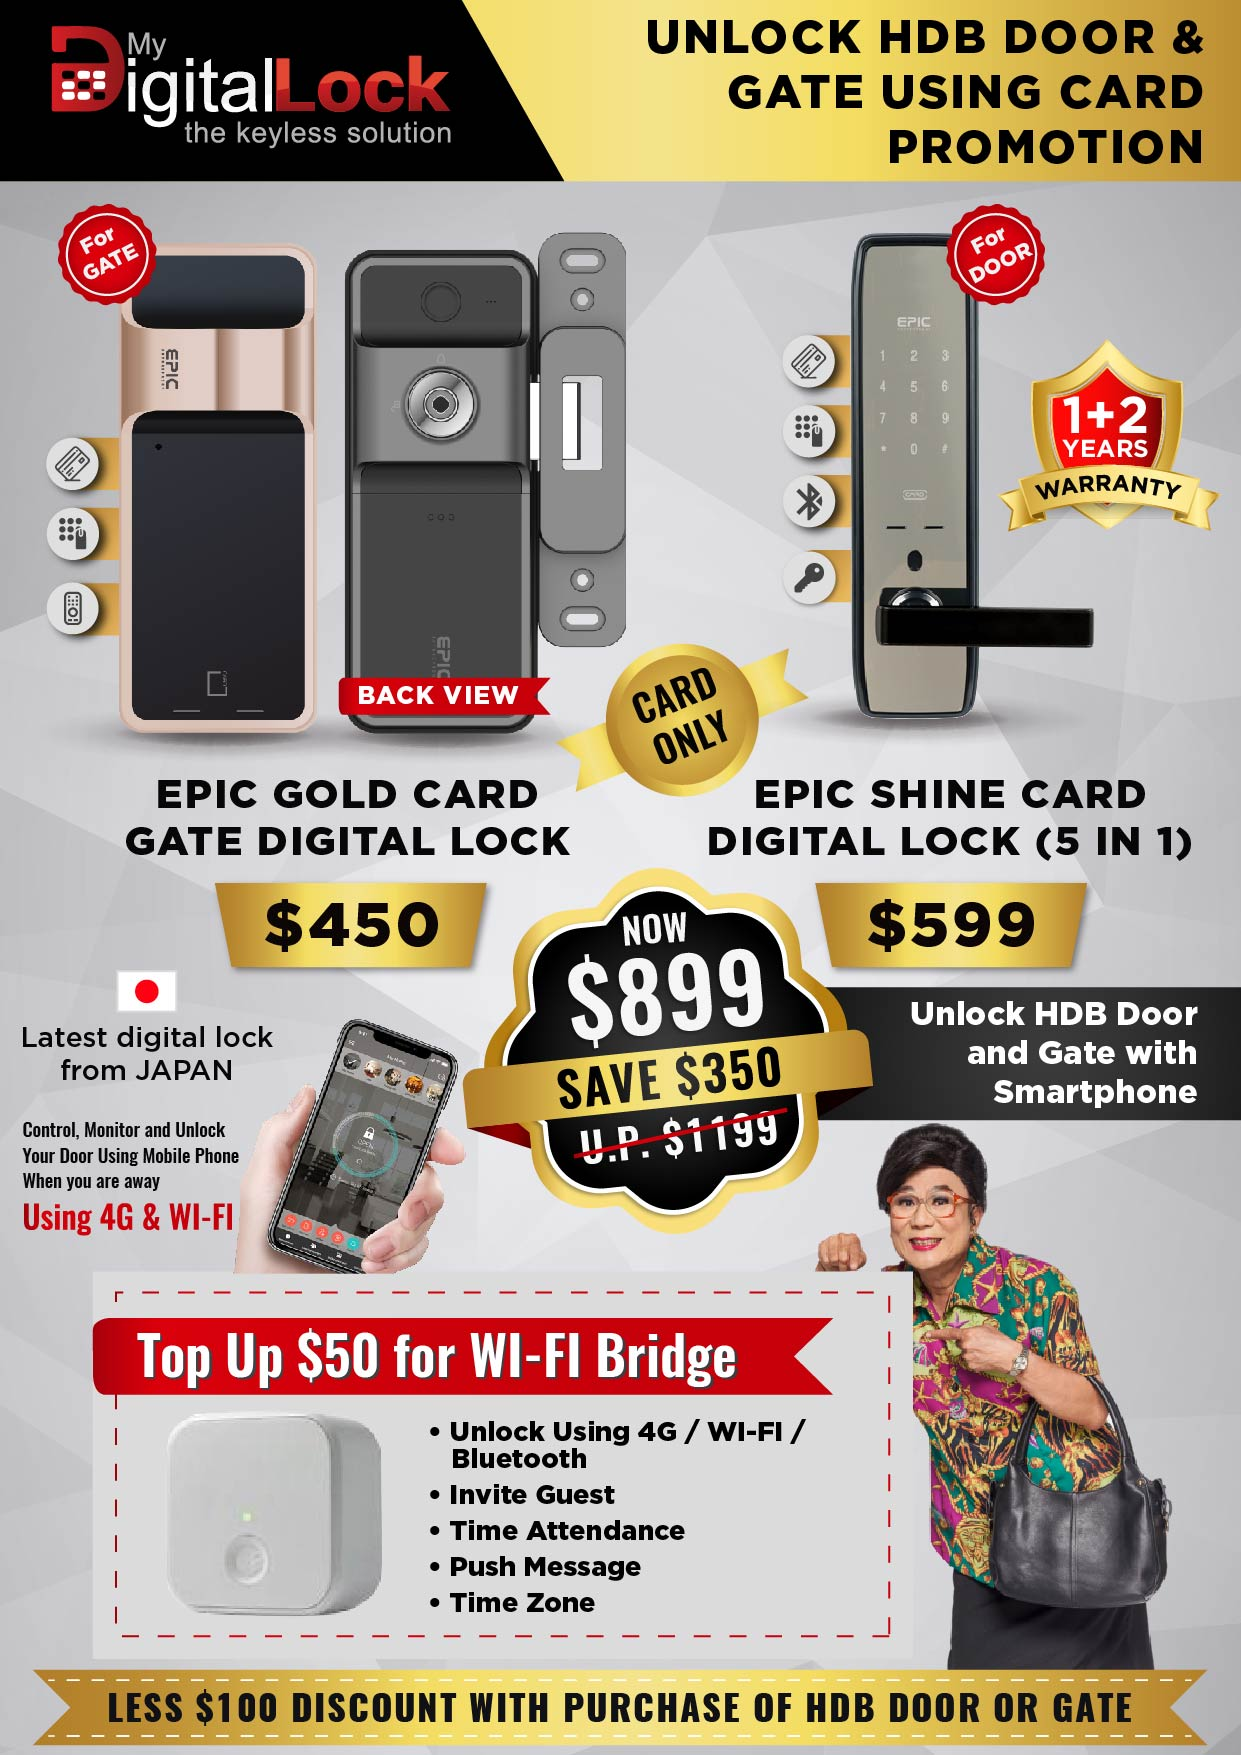 EPIC Gold Card Gate and Shine Card Door Digital Lock